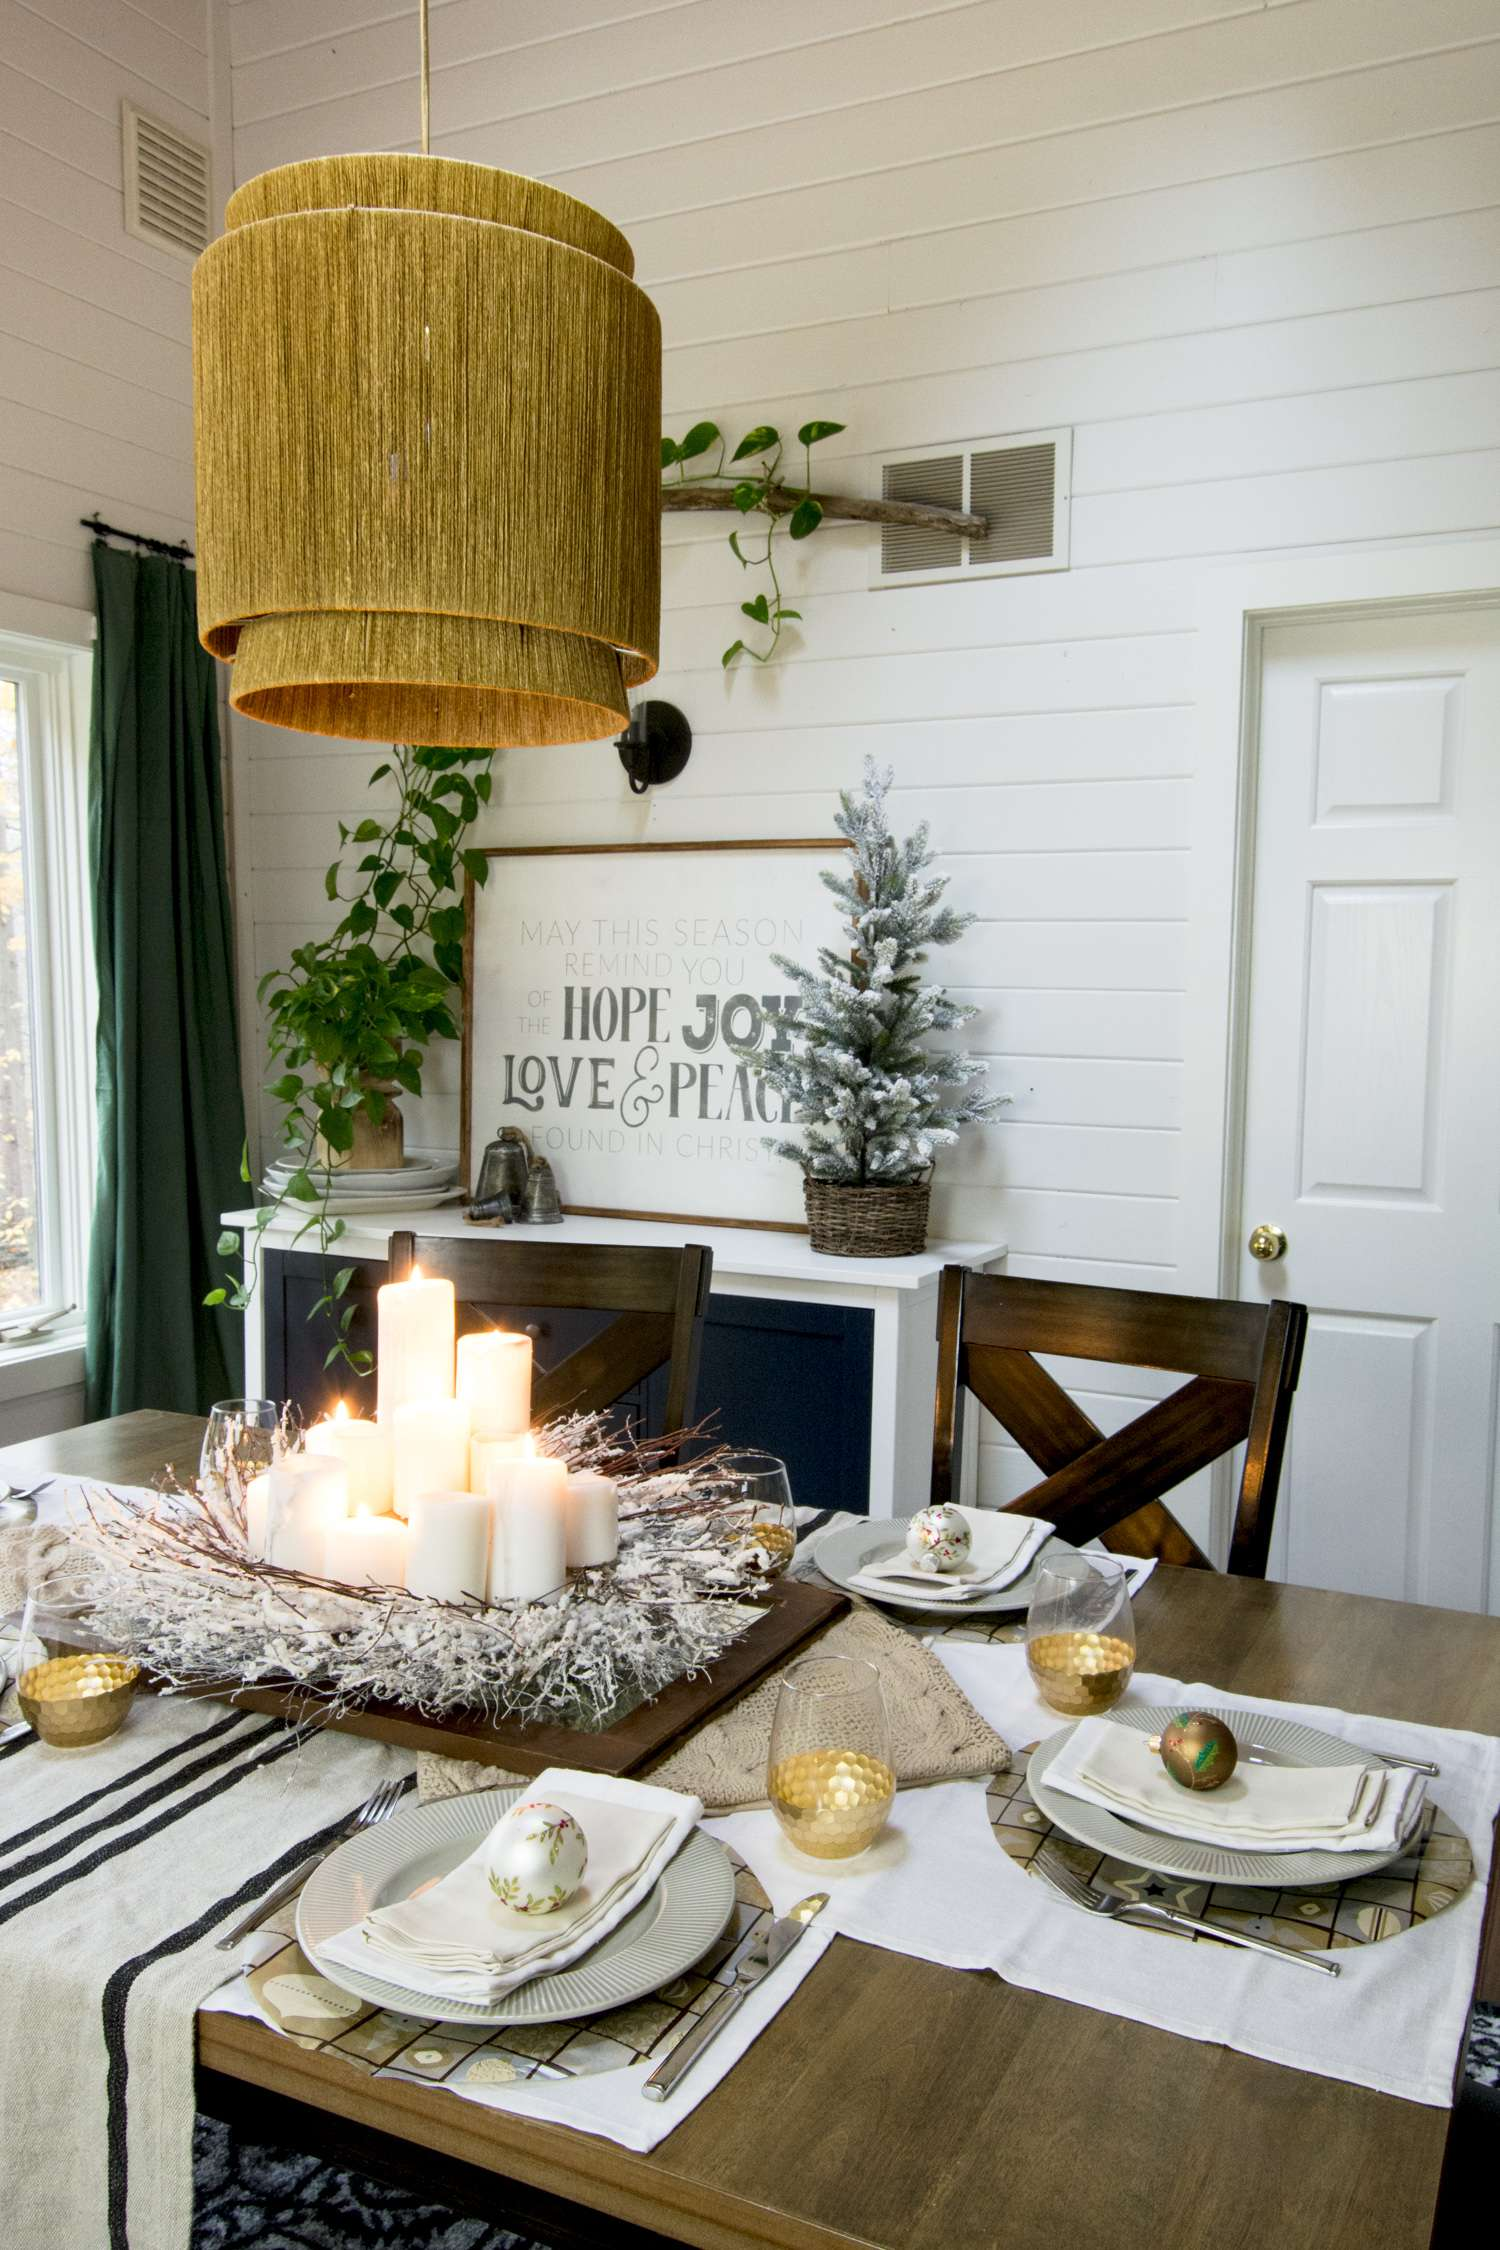 Modern farmhouse dining room decorated for Christmas.